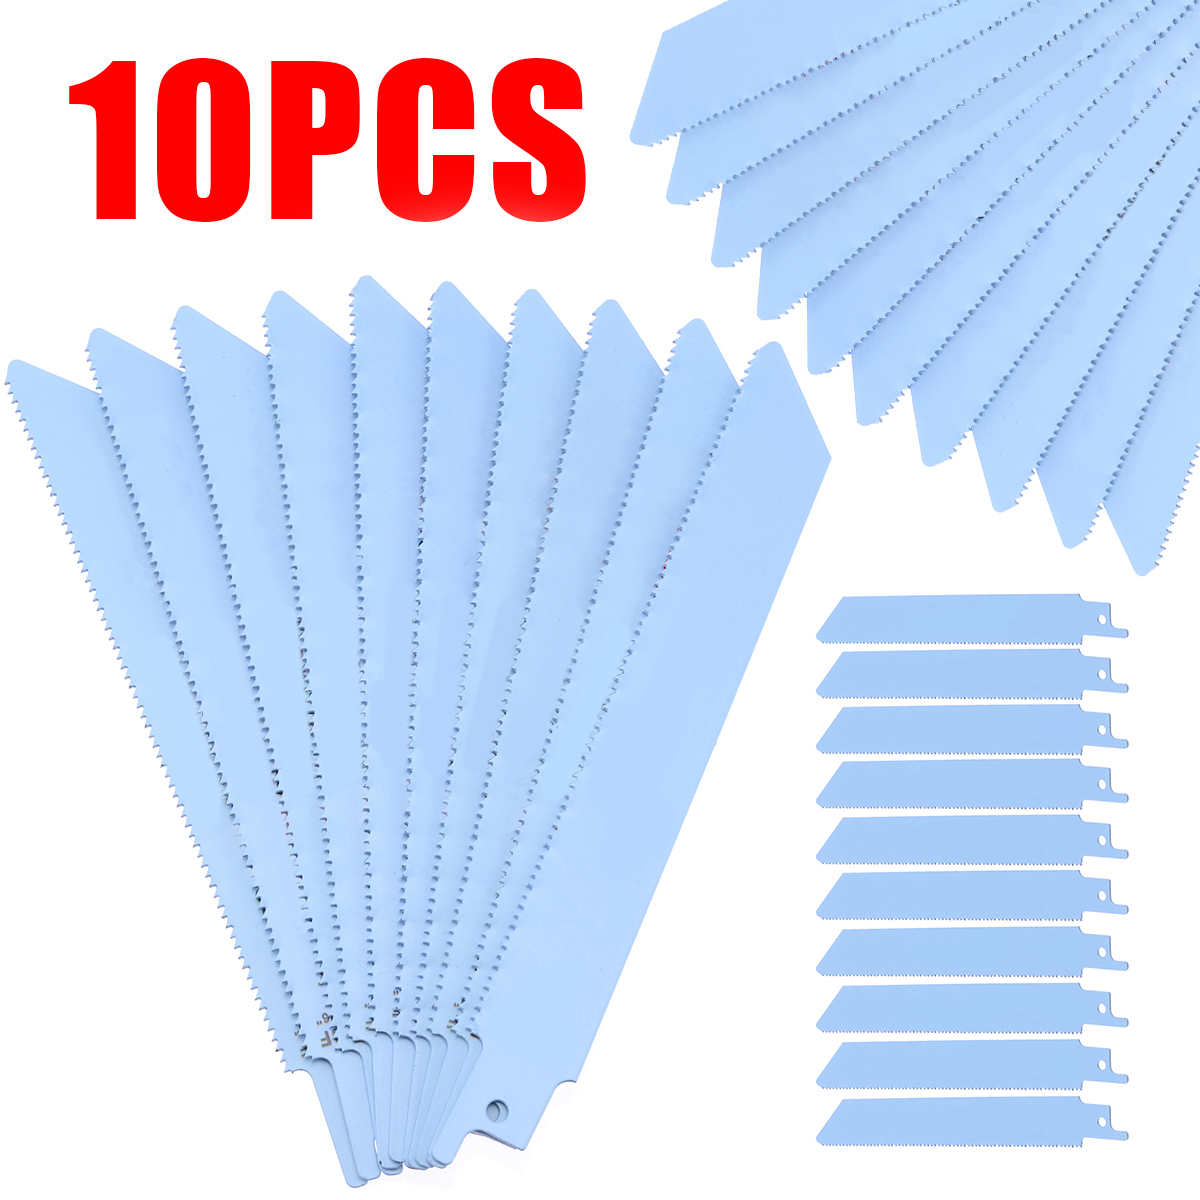 10Pcs 6'' Blue Reciprocating Saw Blades 150mm S922BF Reciprocating Sabre Saw Blade Hand Power Tools For Metal Cutting Saw Blades